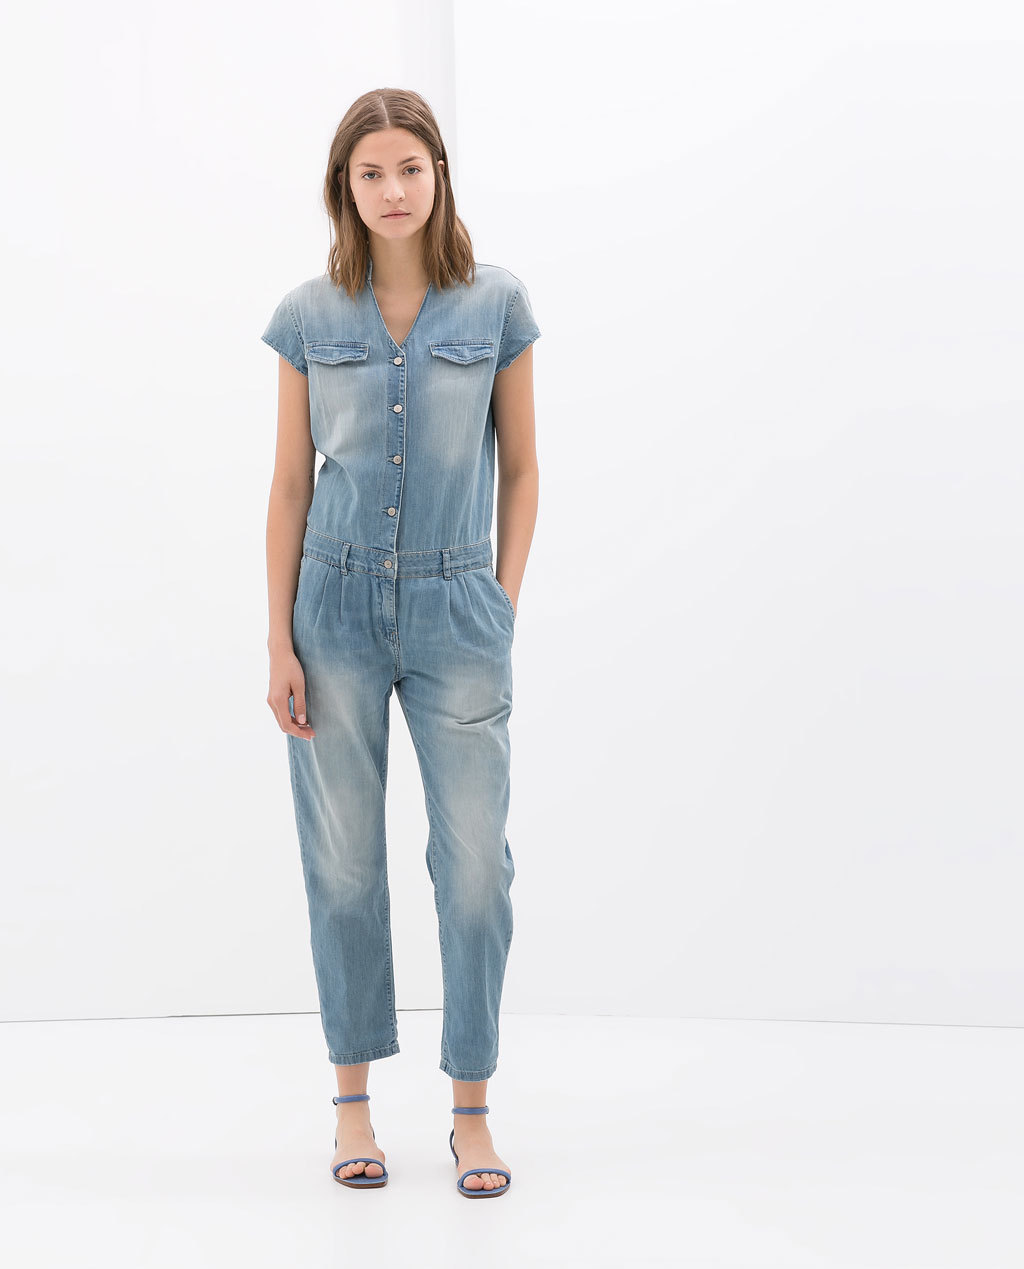 Short Sleeve Denim Jumpsuit - neckline: v-neck; sleeve style: capped; pattern: plain; bust detail: buttons at bust (in middle at breastbone)/zip detail at bust; predominant colour: denim; occasions: casual; length: ankle length; fit: body skimming; fibres: cotton - 100%; sleeve length: short sleeve; texture group: denim; style: jumpsuit; pattern type: fabric; season: s/s 2014